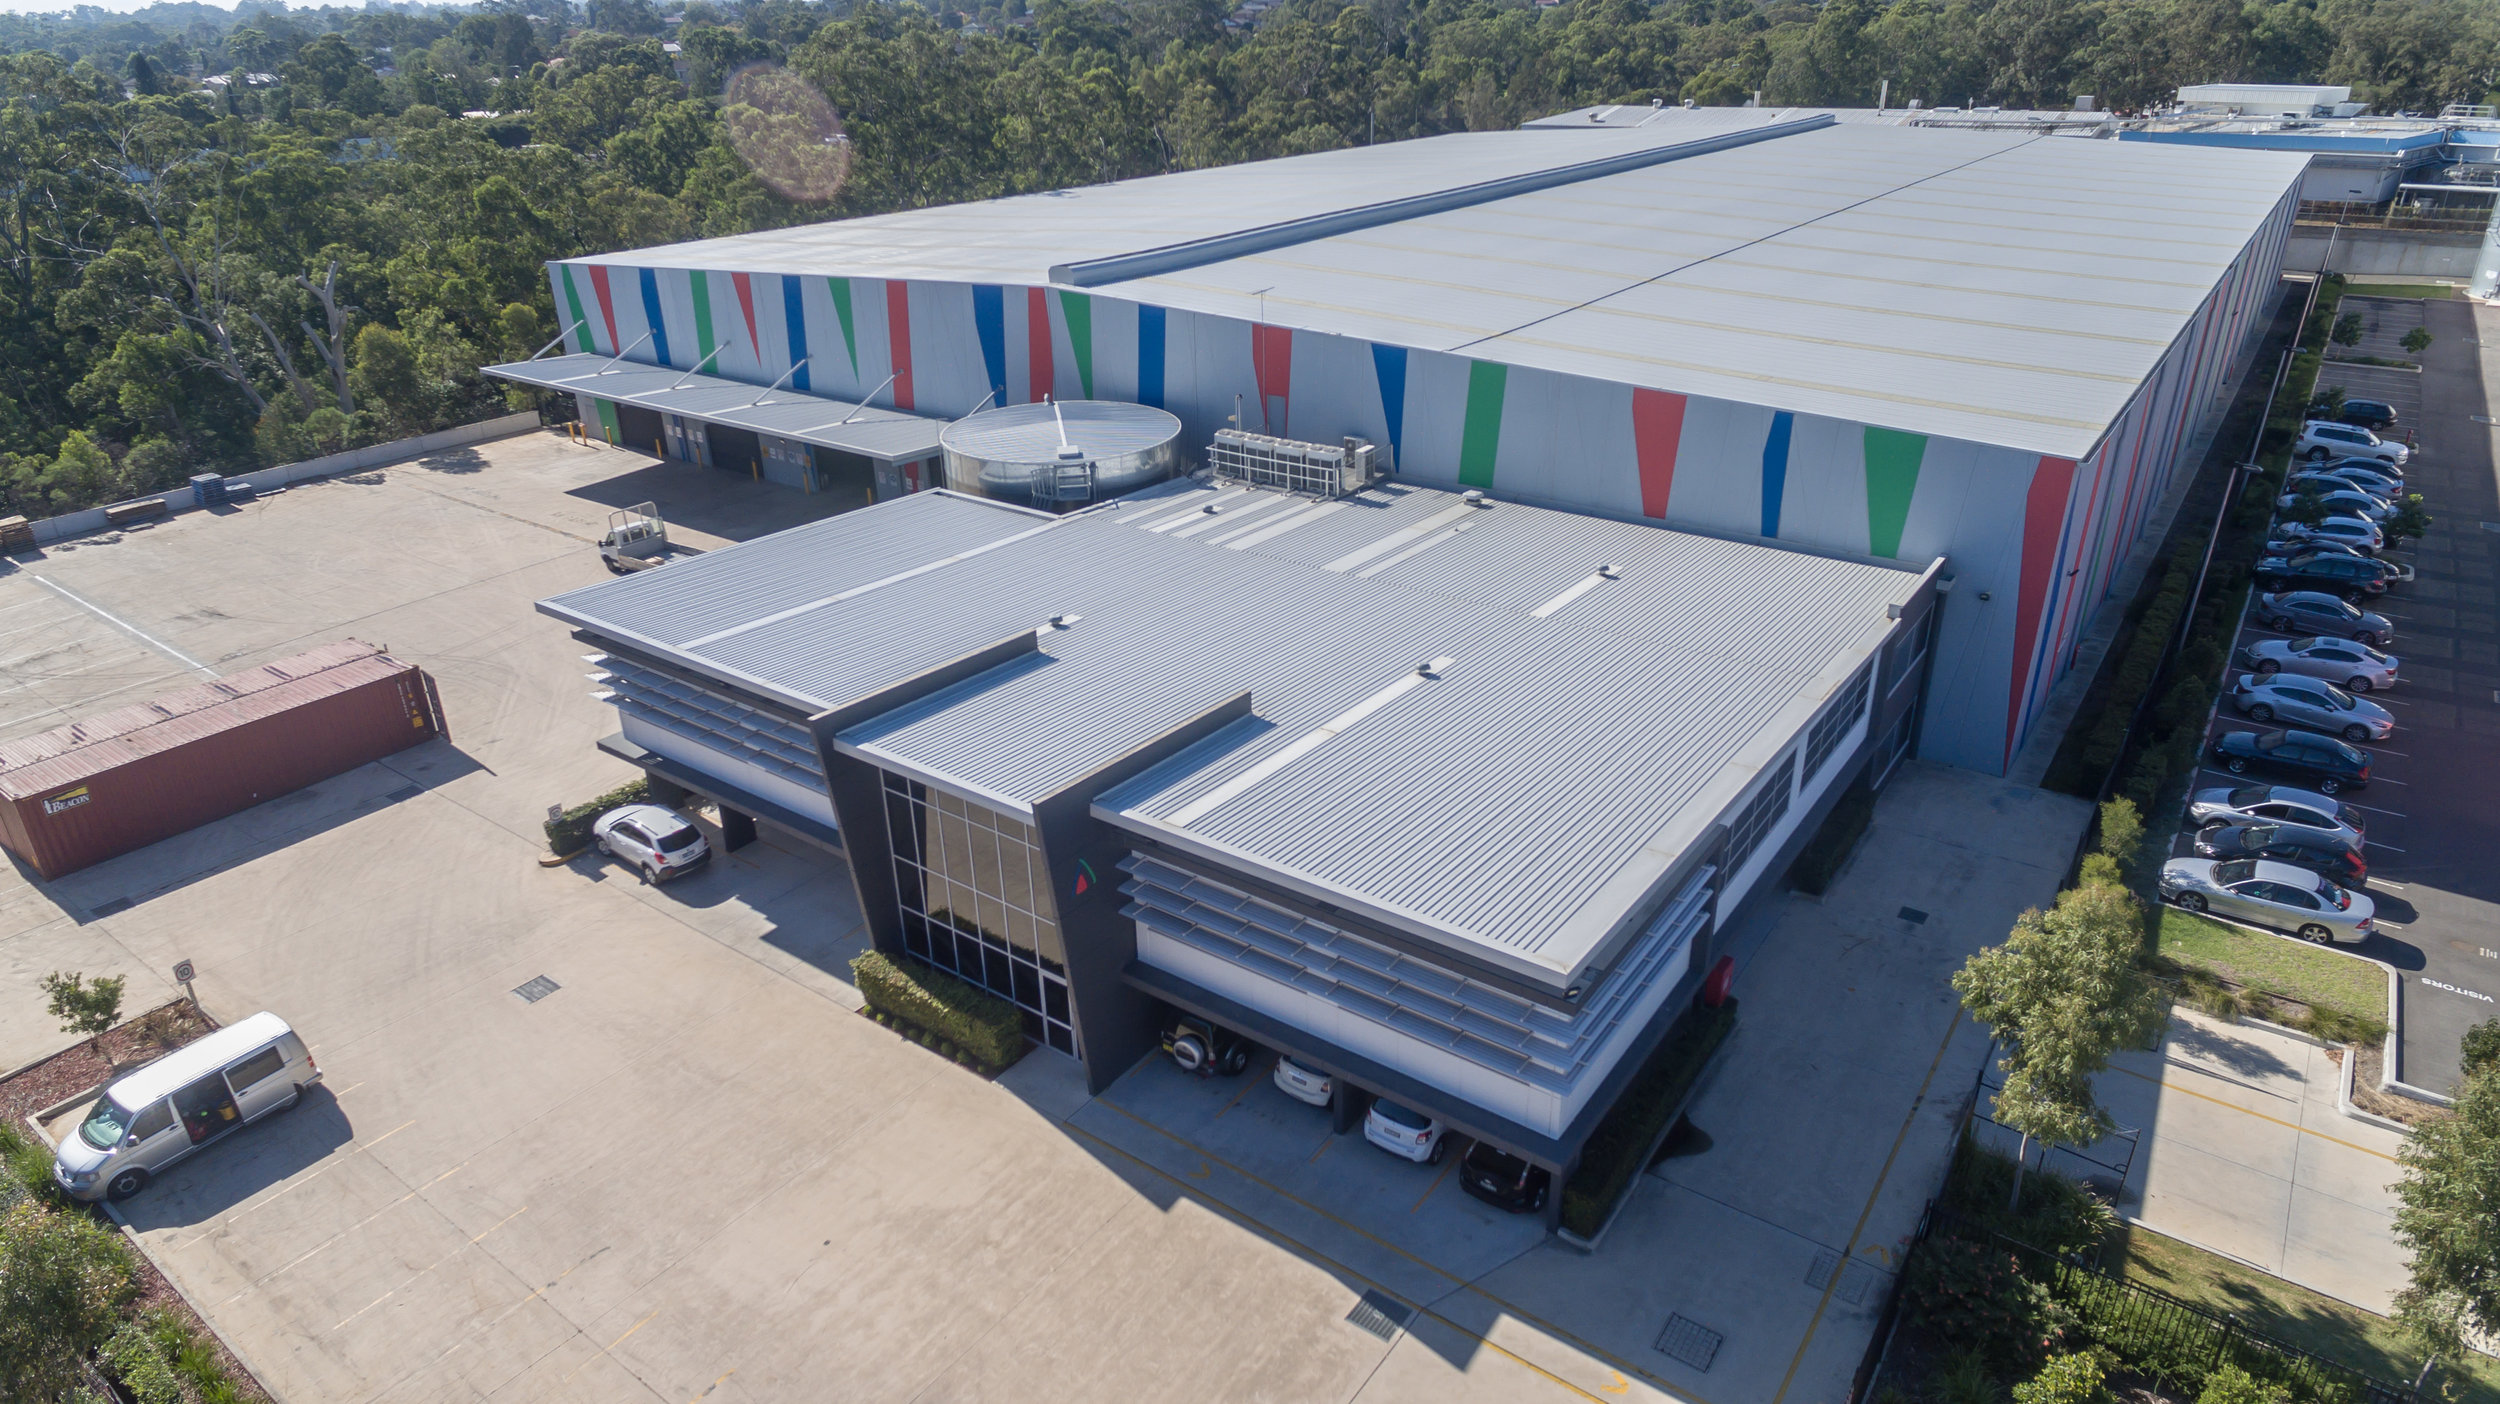 10,000m2 Warehouse - LOCATION: WINSTON HILLSCOST: 11 Million